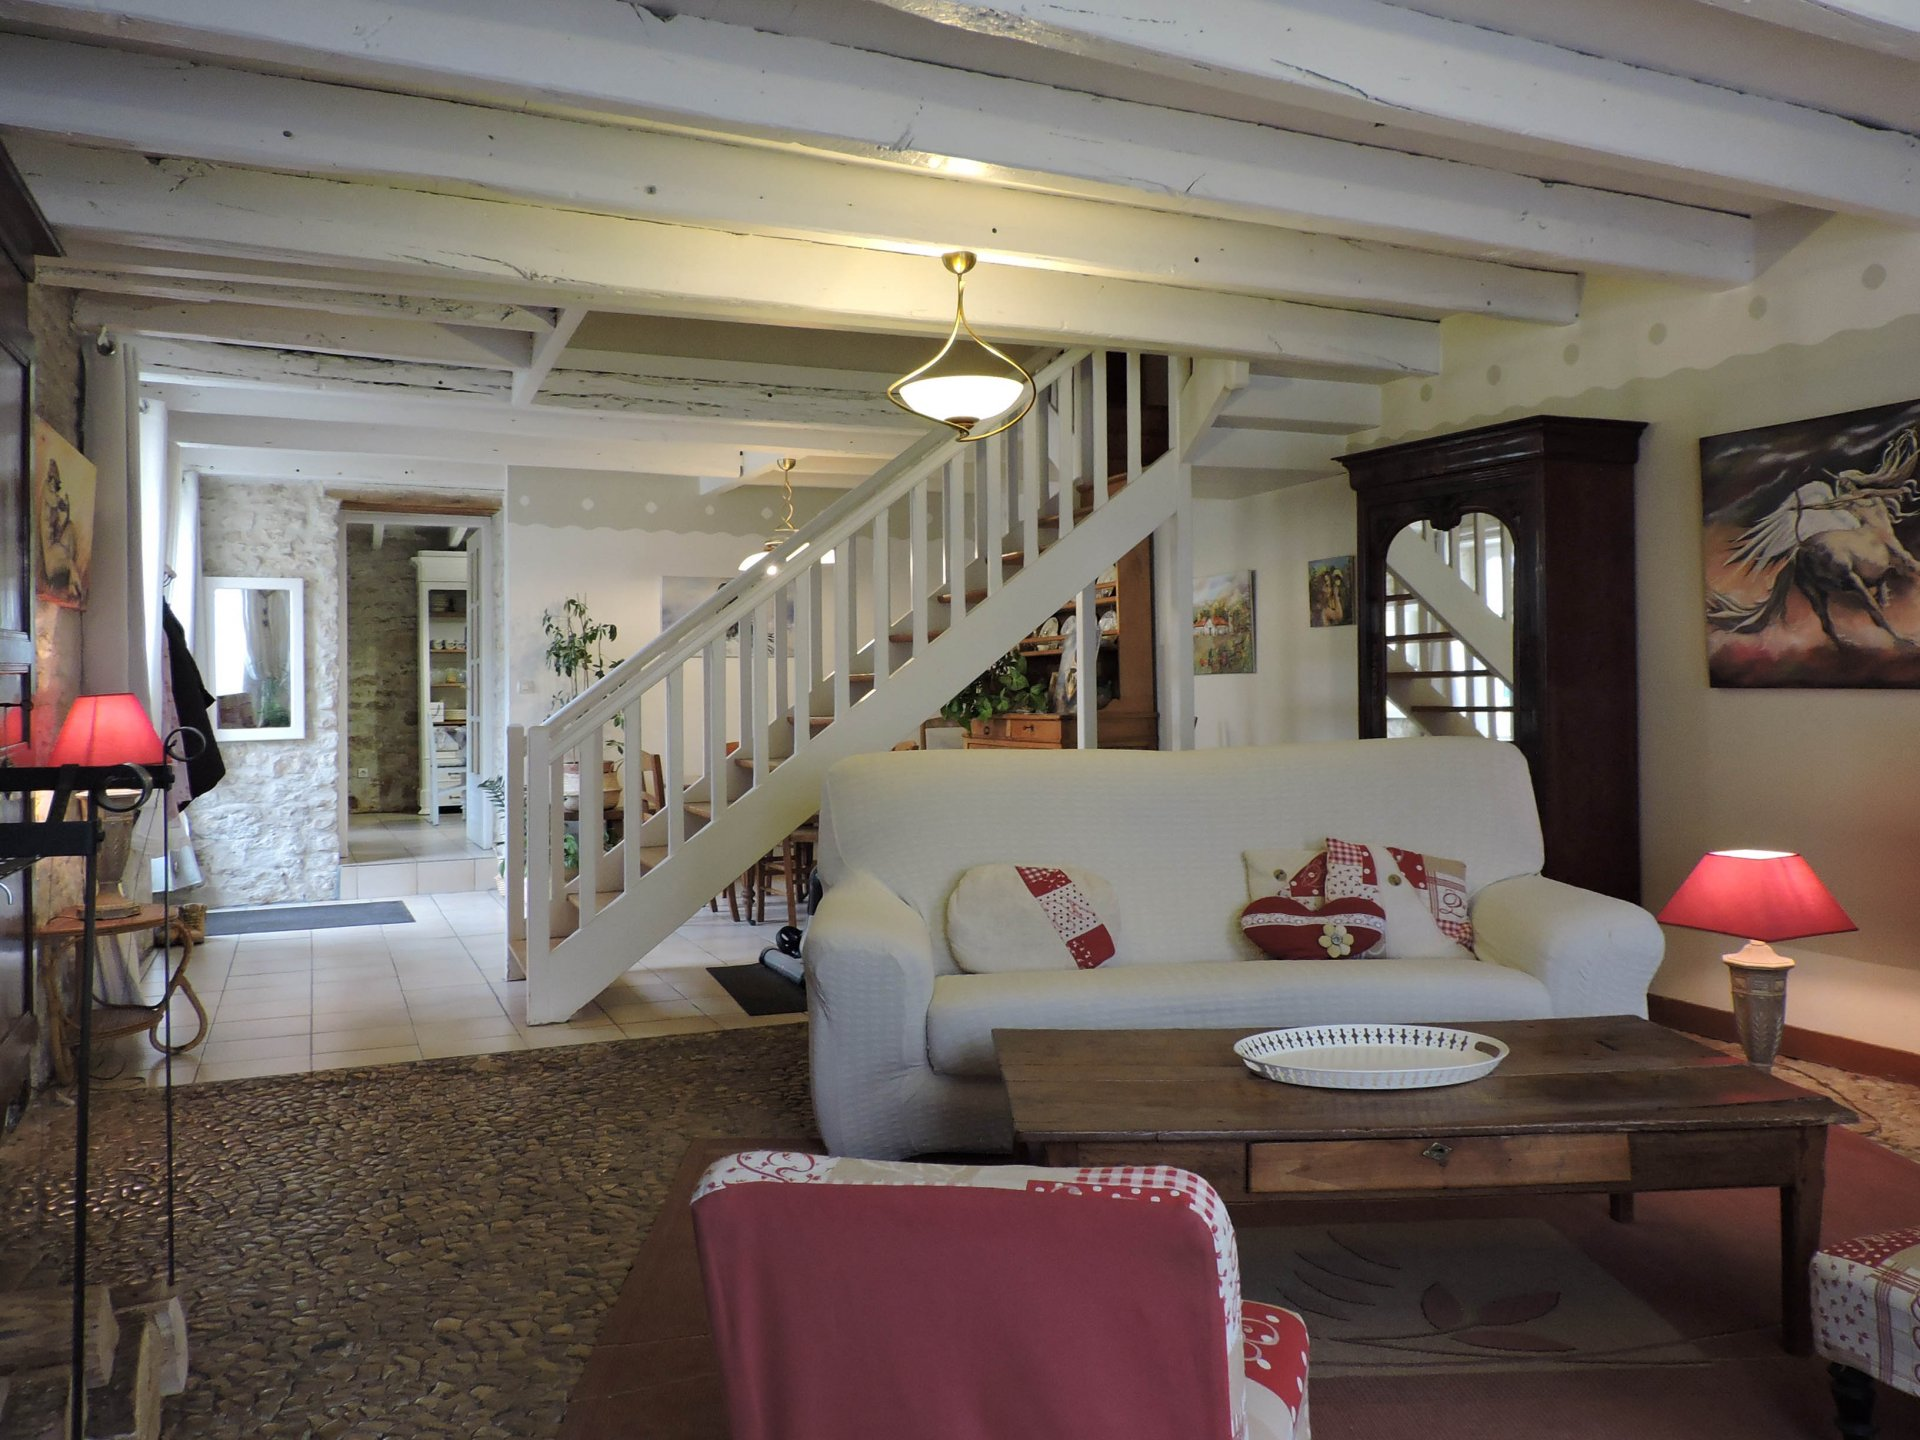 Wonderful opportunity for this character family house built before 1800 on the vestiges of a Templière courtyard.